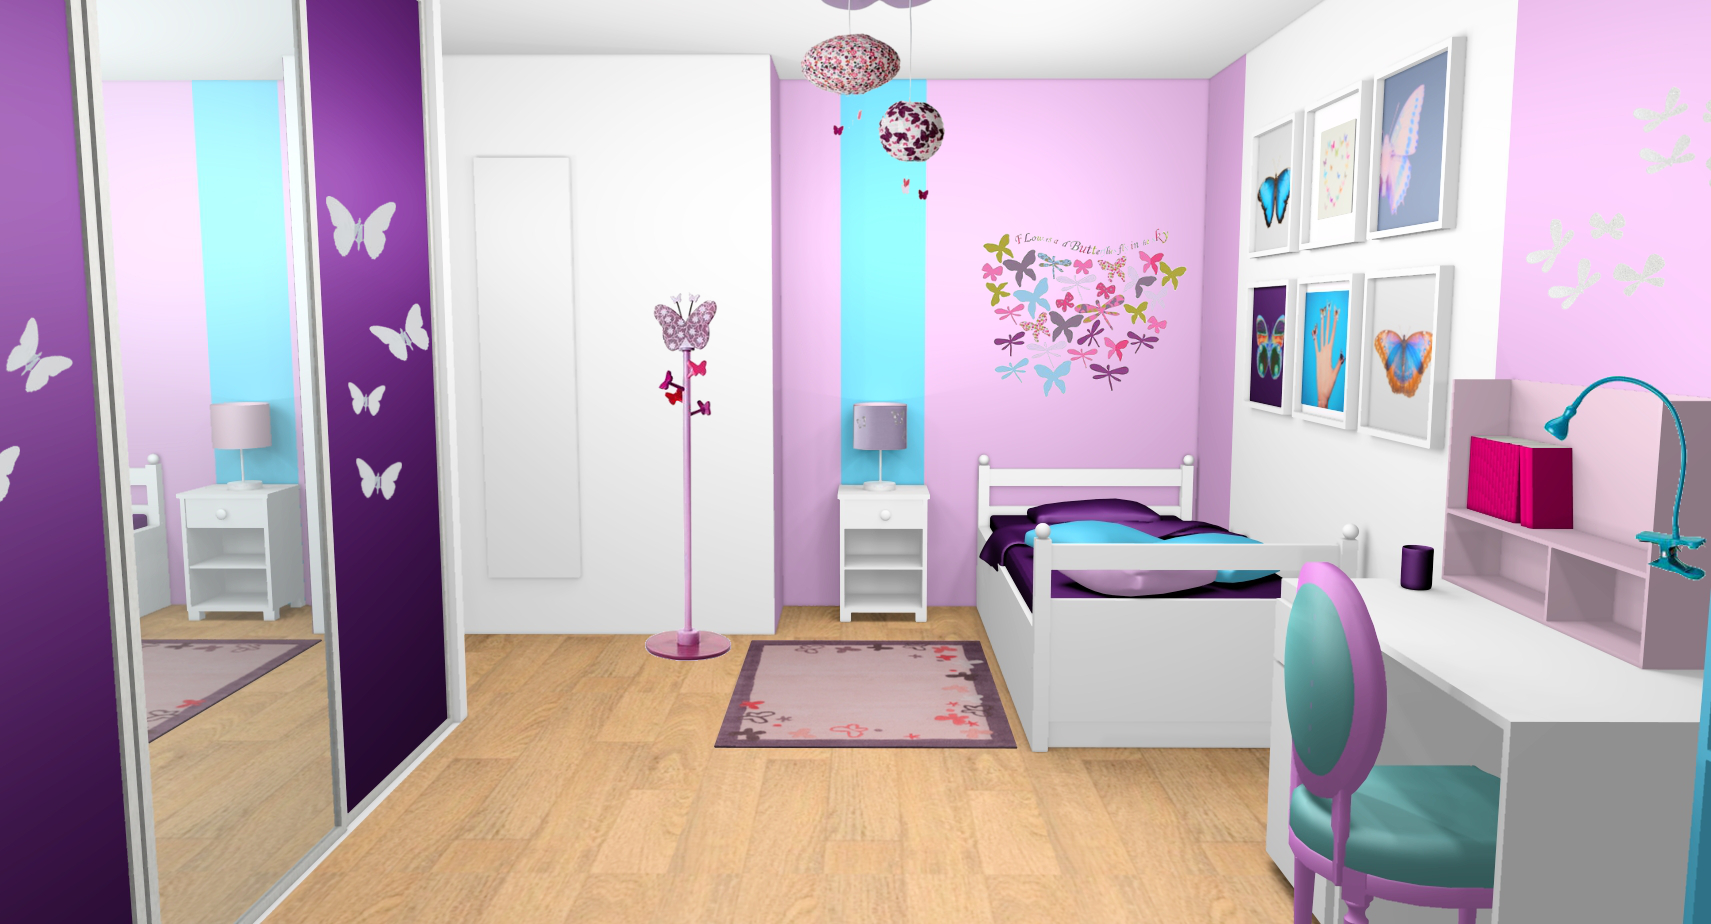 D coration interieur chambre fille for Decoration maison interieur idees